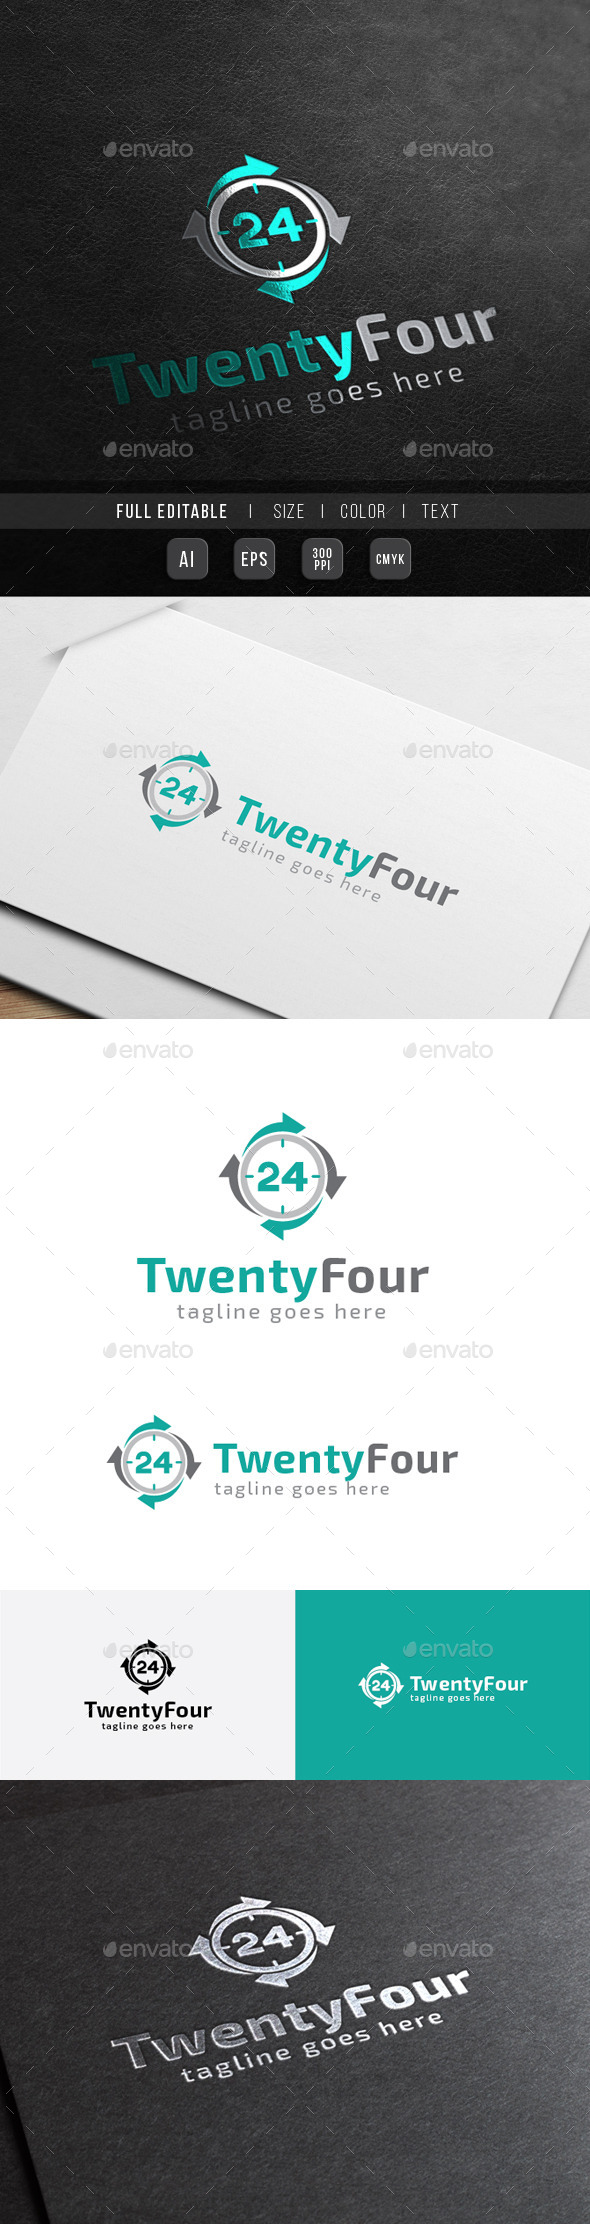 24 hour - Twenty Four Number Business - Numbers Logo Templates